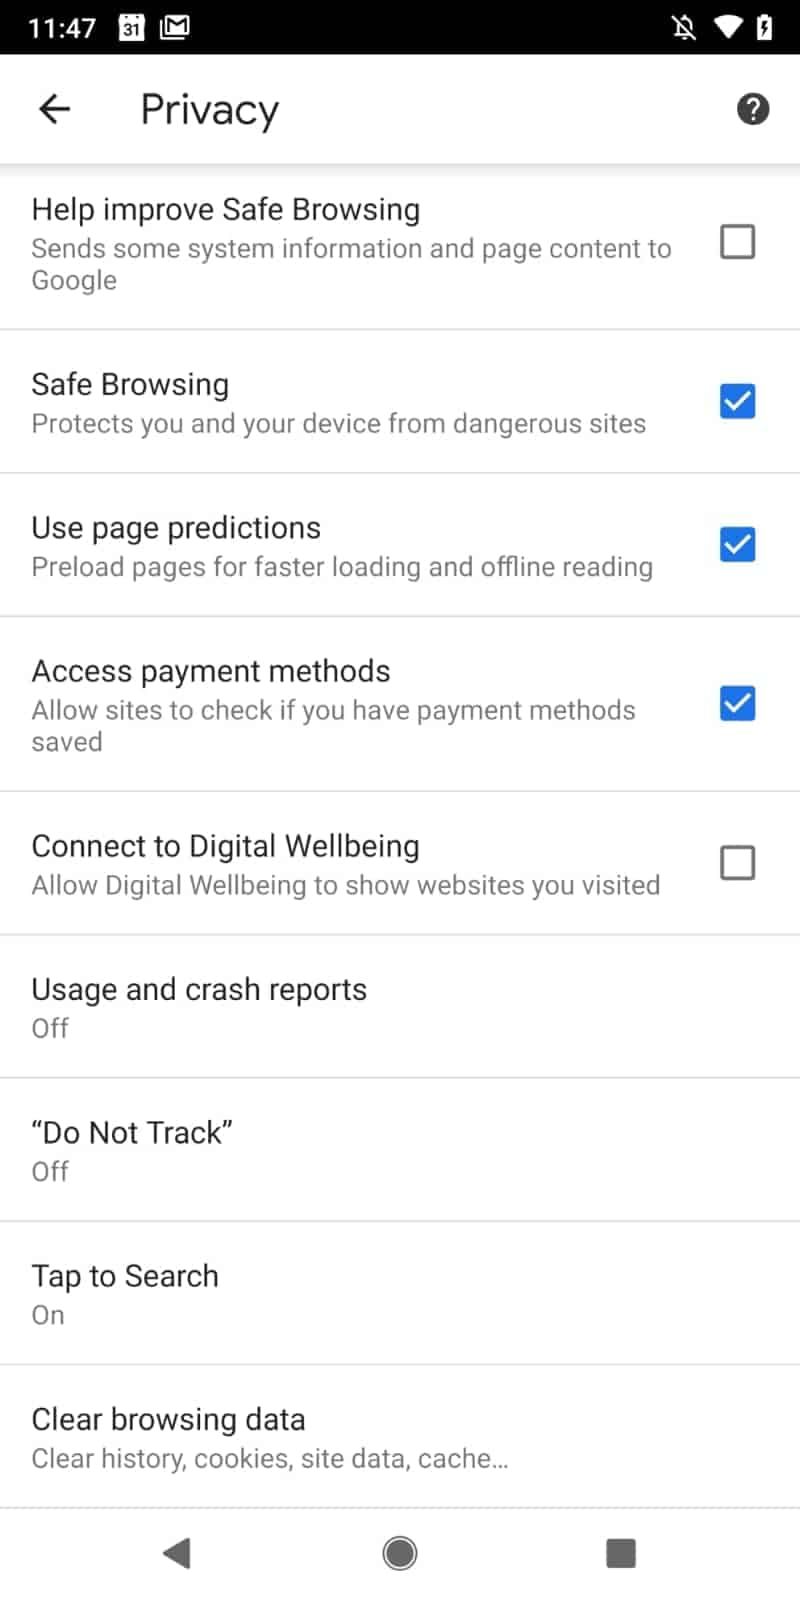 chrome android digital wellbeing setting pre launch from commits 01